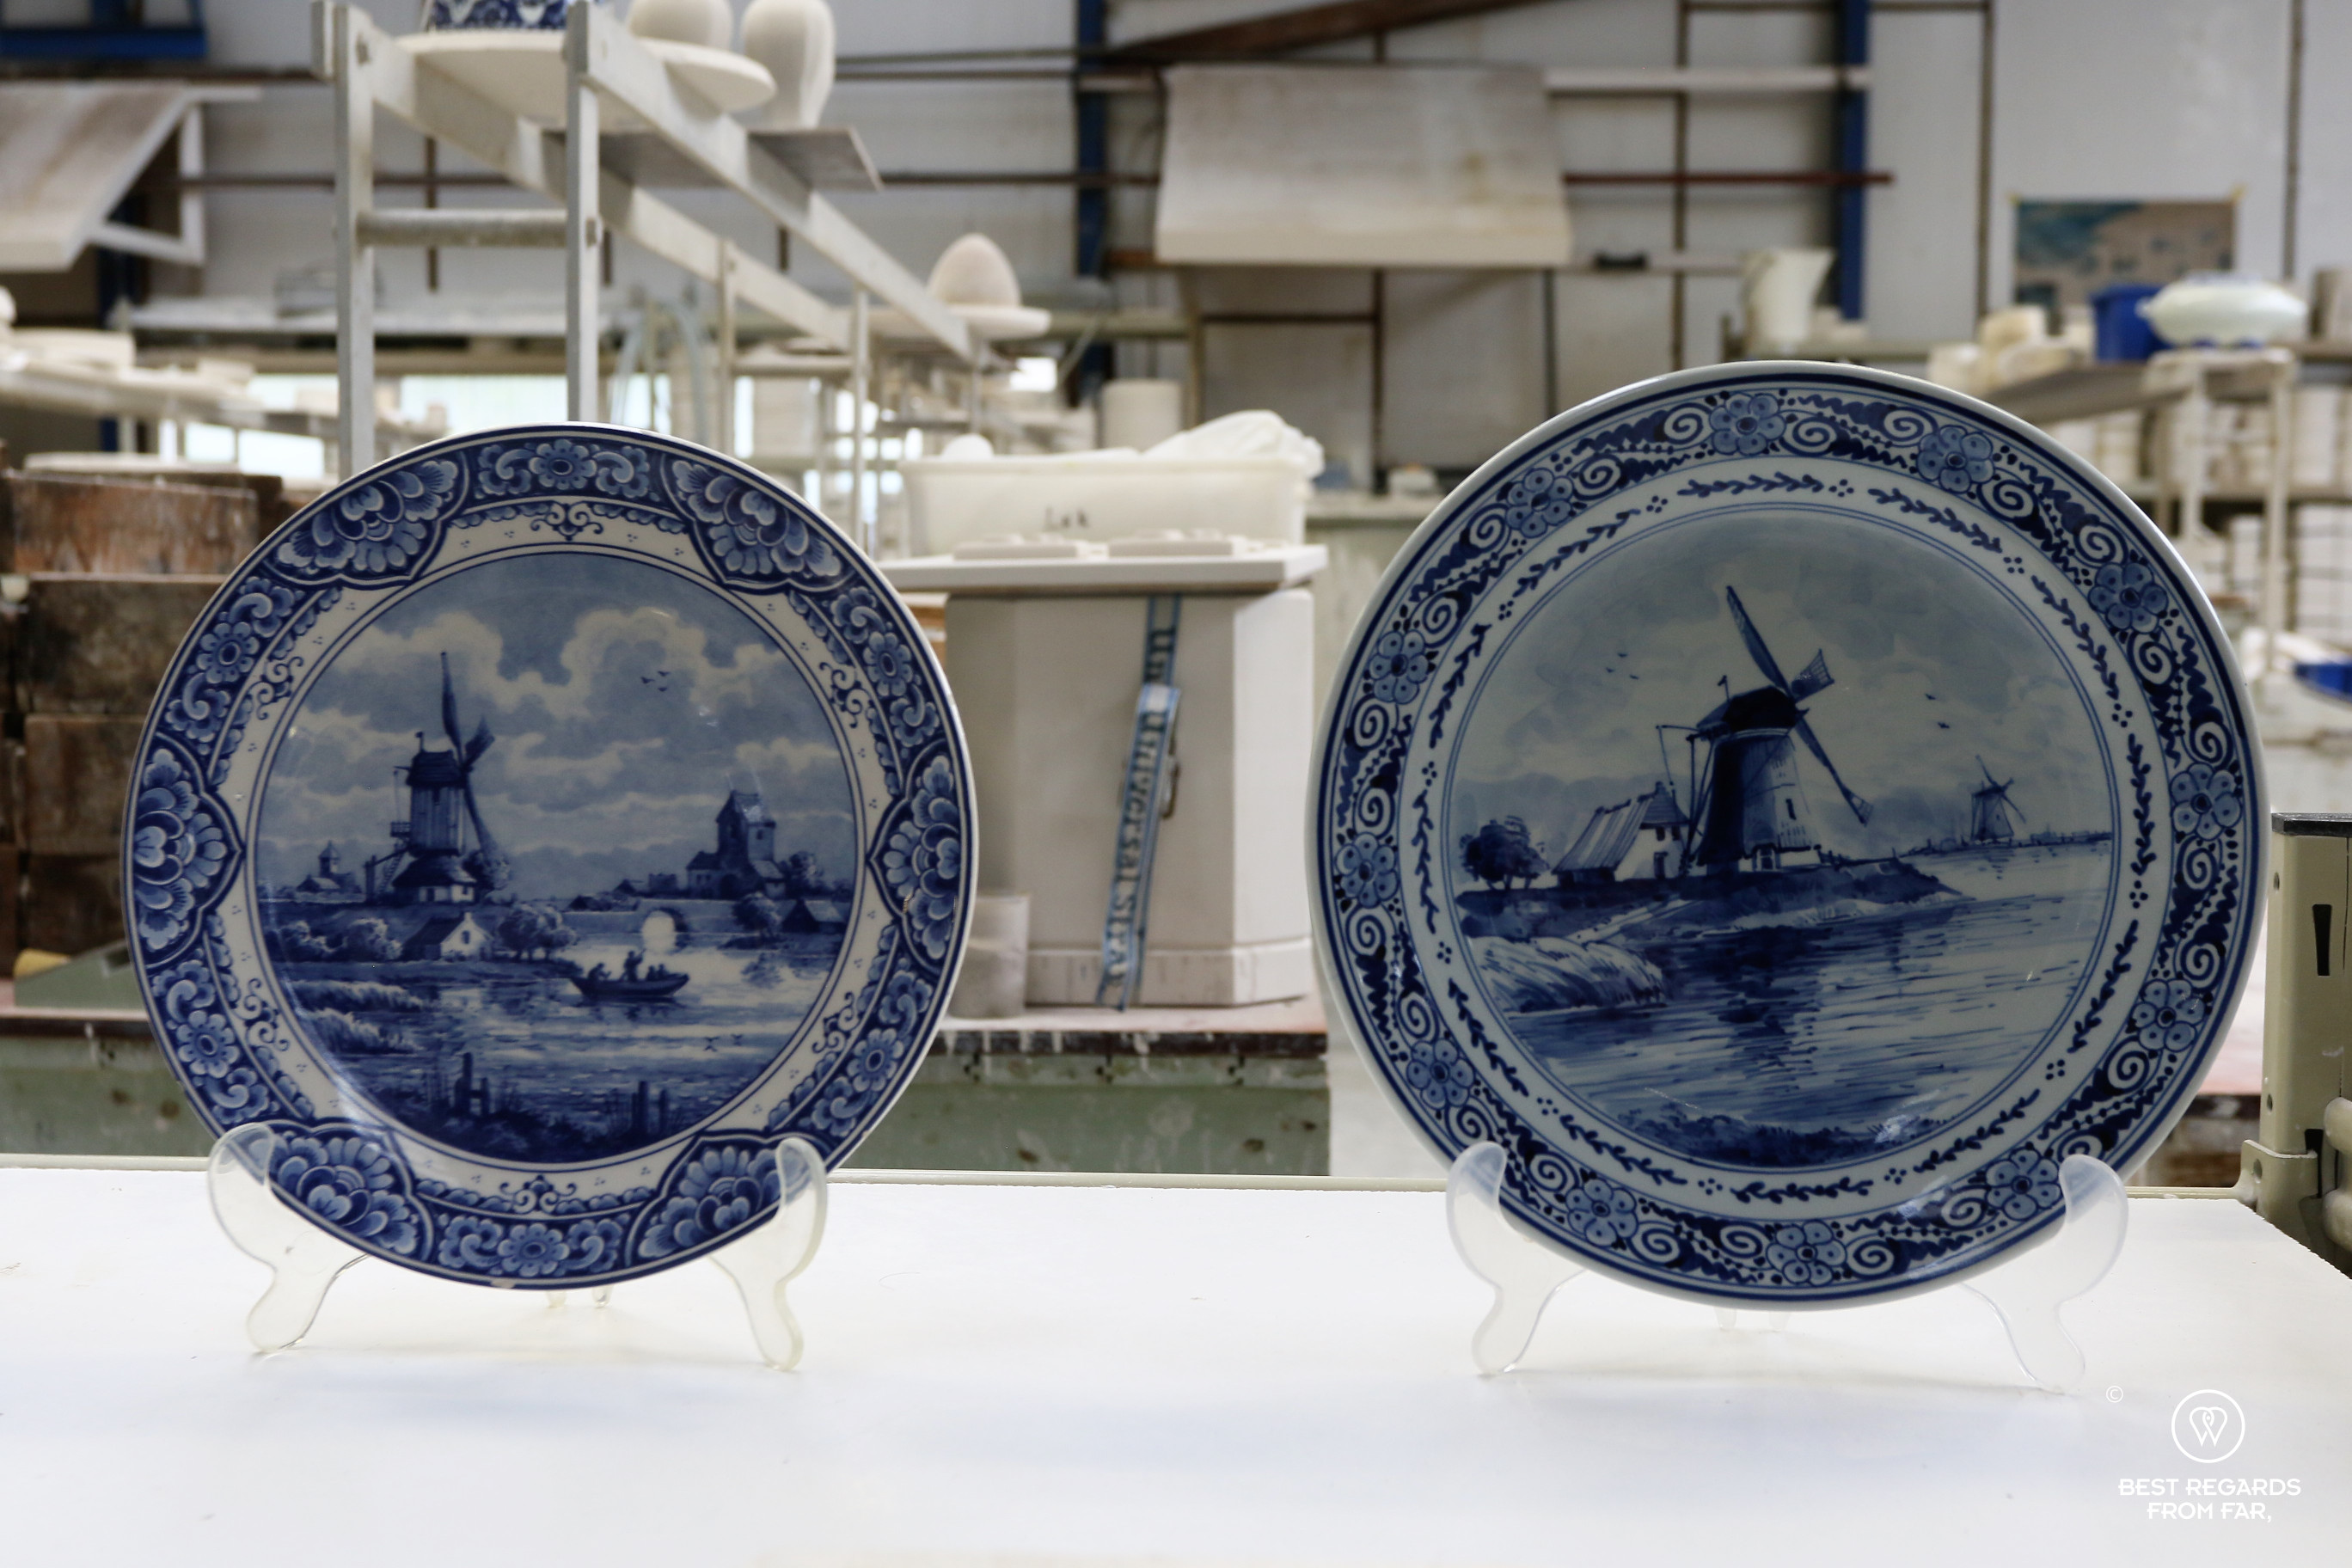 2 plates showing hand-painted vs. transferred motif at the Royal Delft factory